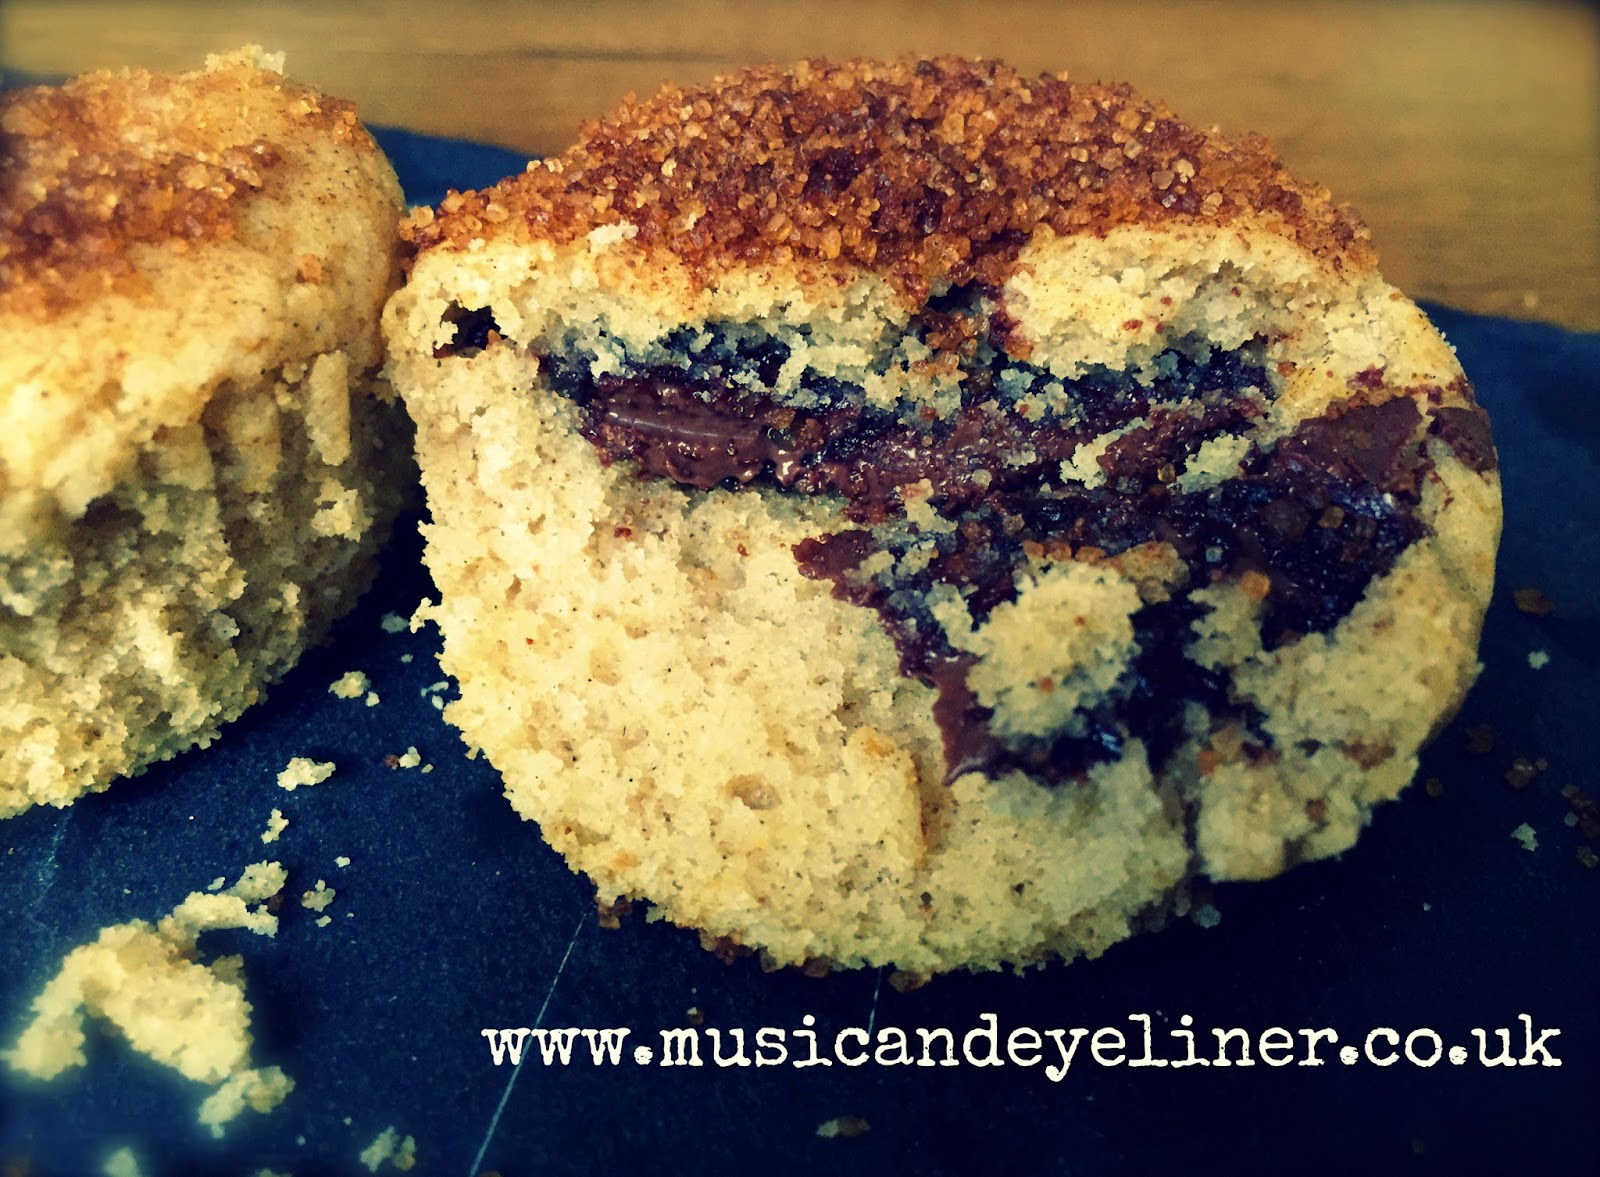 Nutella and cinnamon gluten free muffins recipe